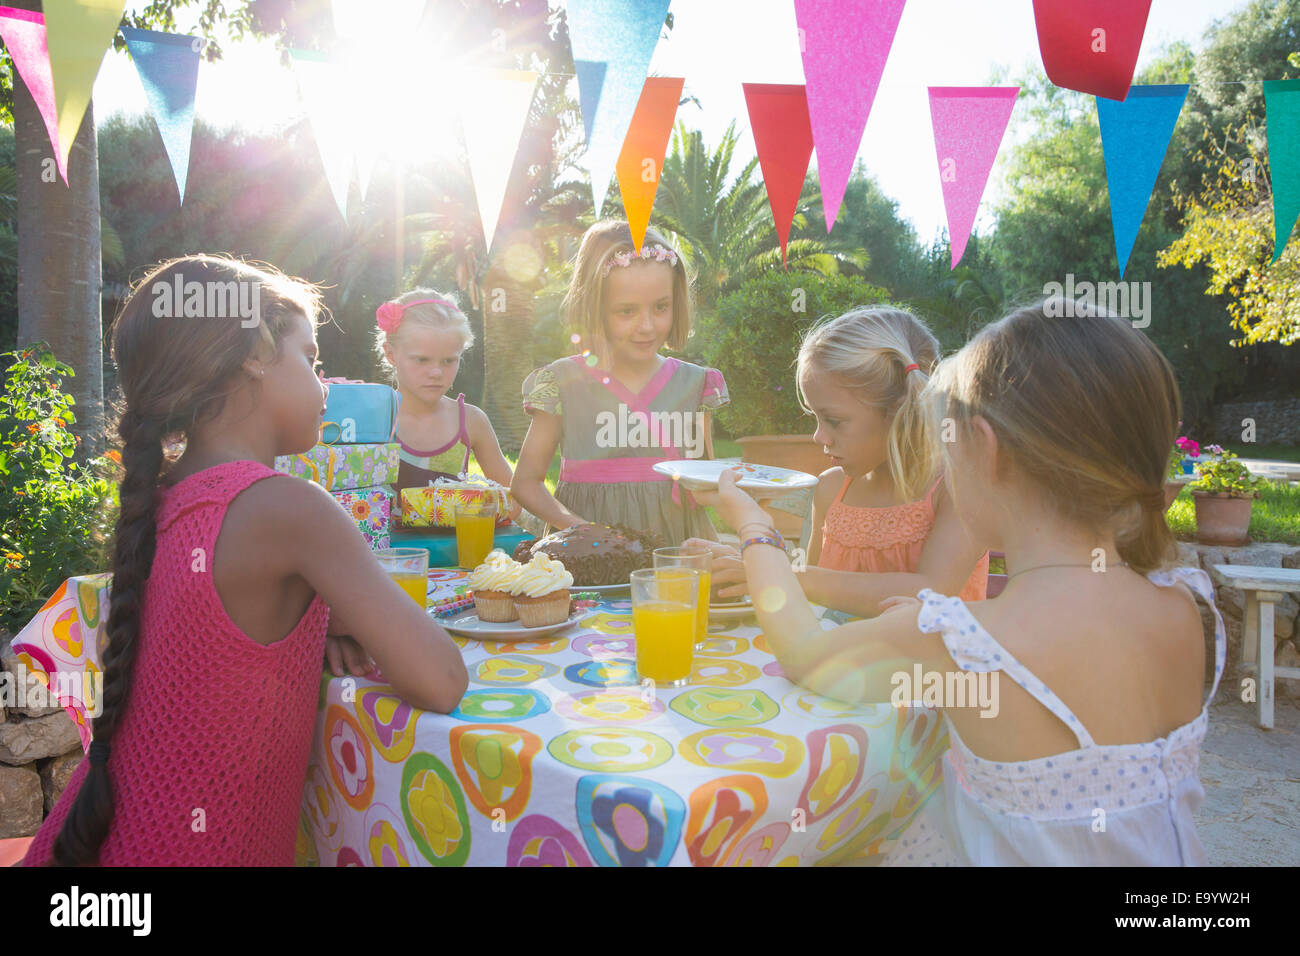 Girl serving friends birthday cake - Stock Image